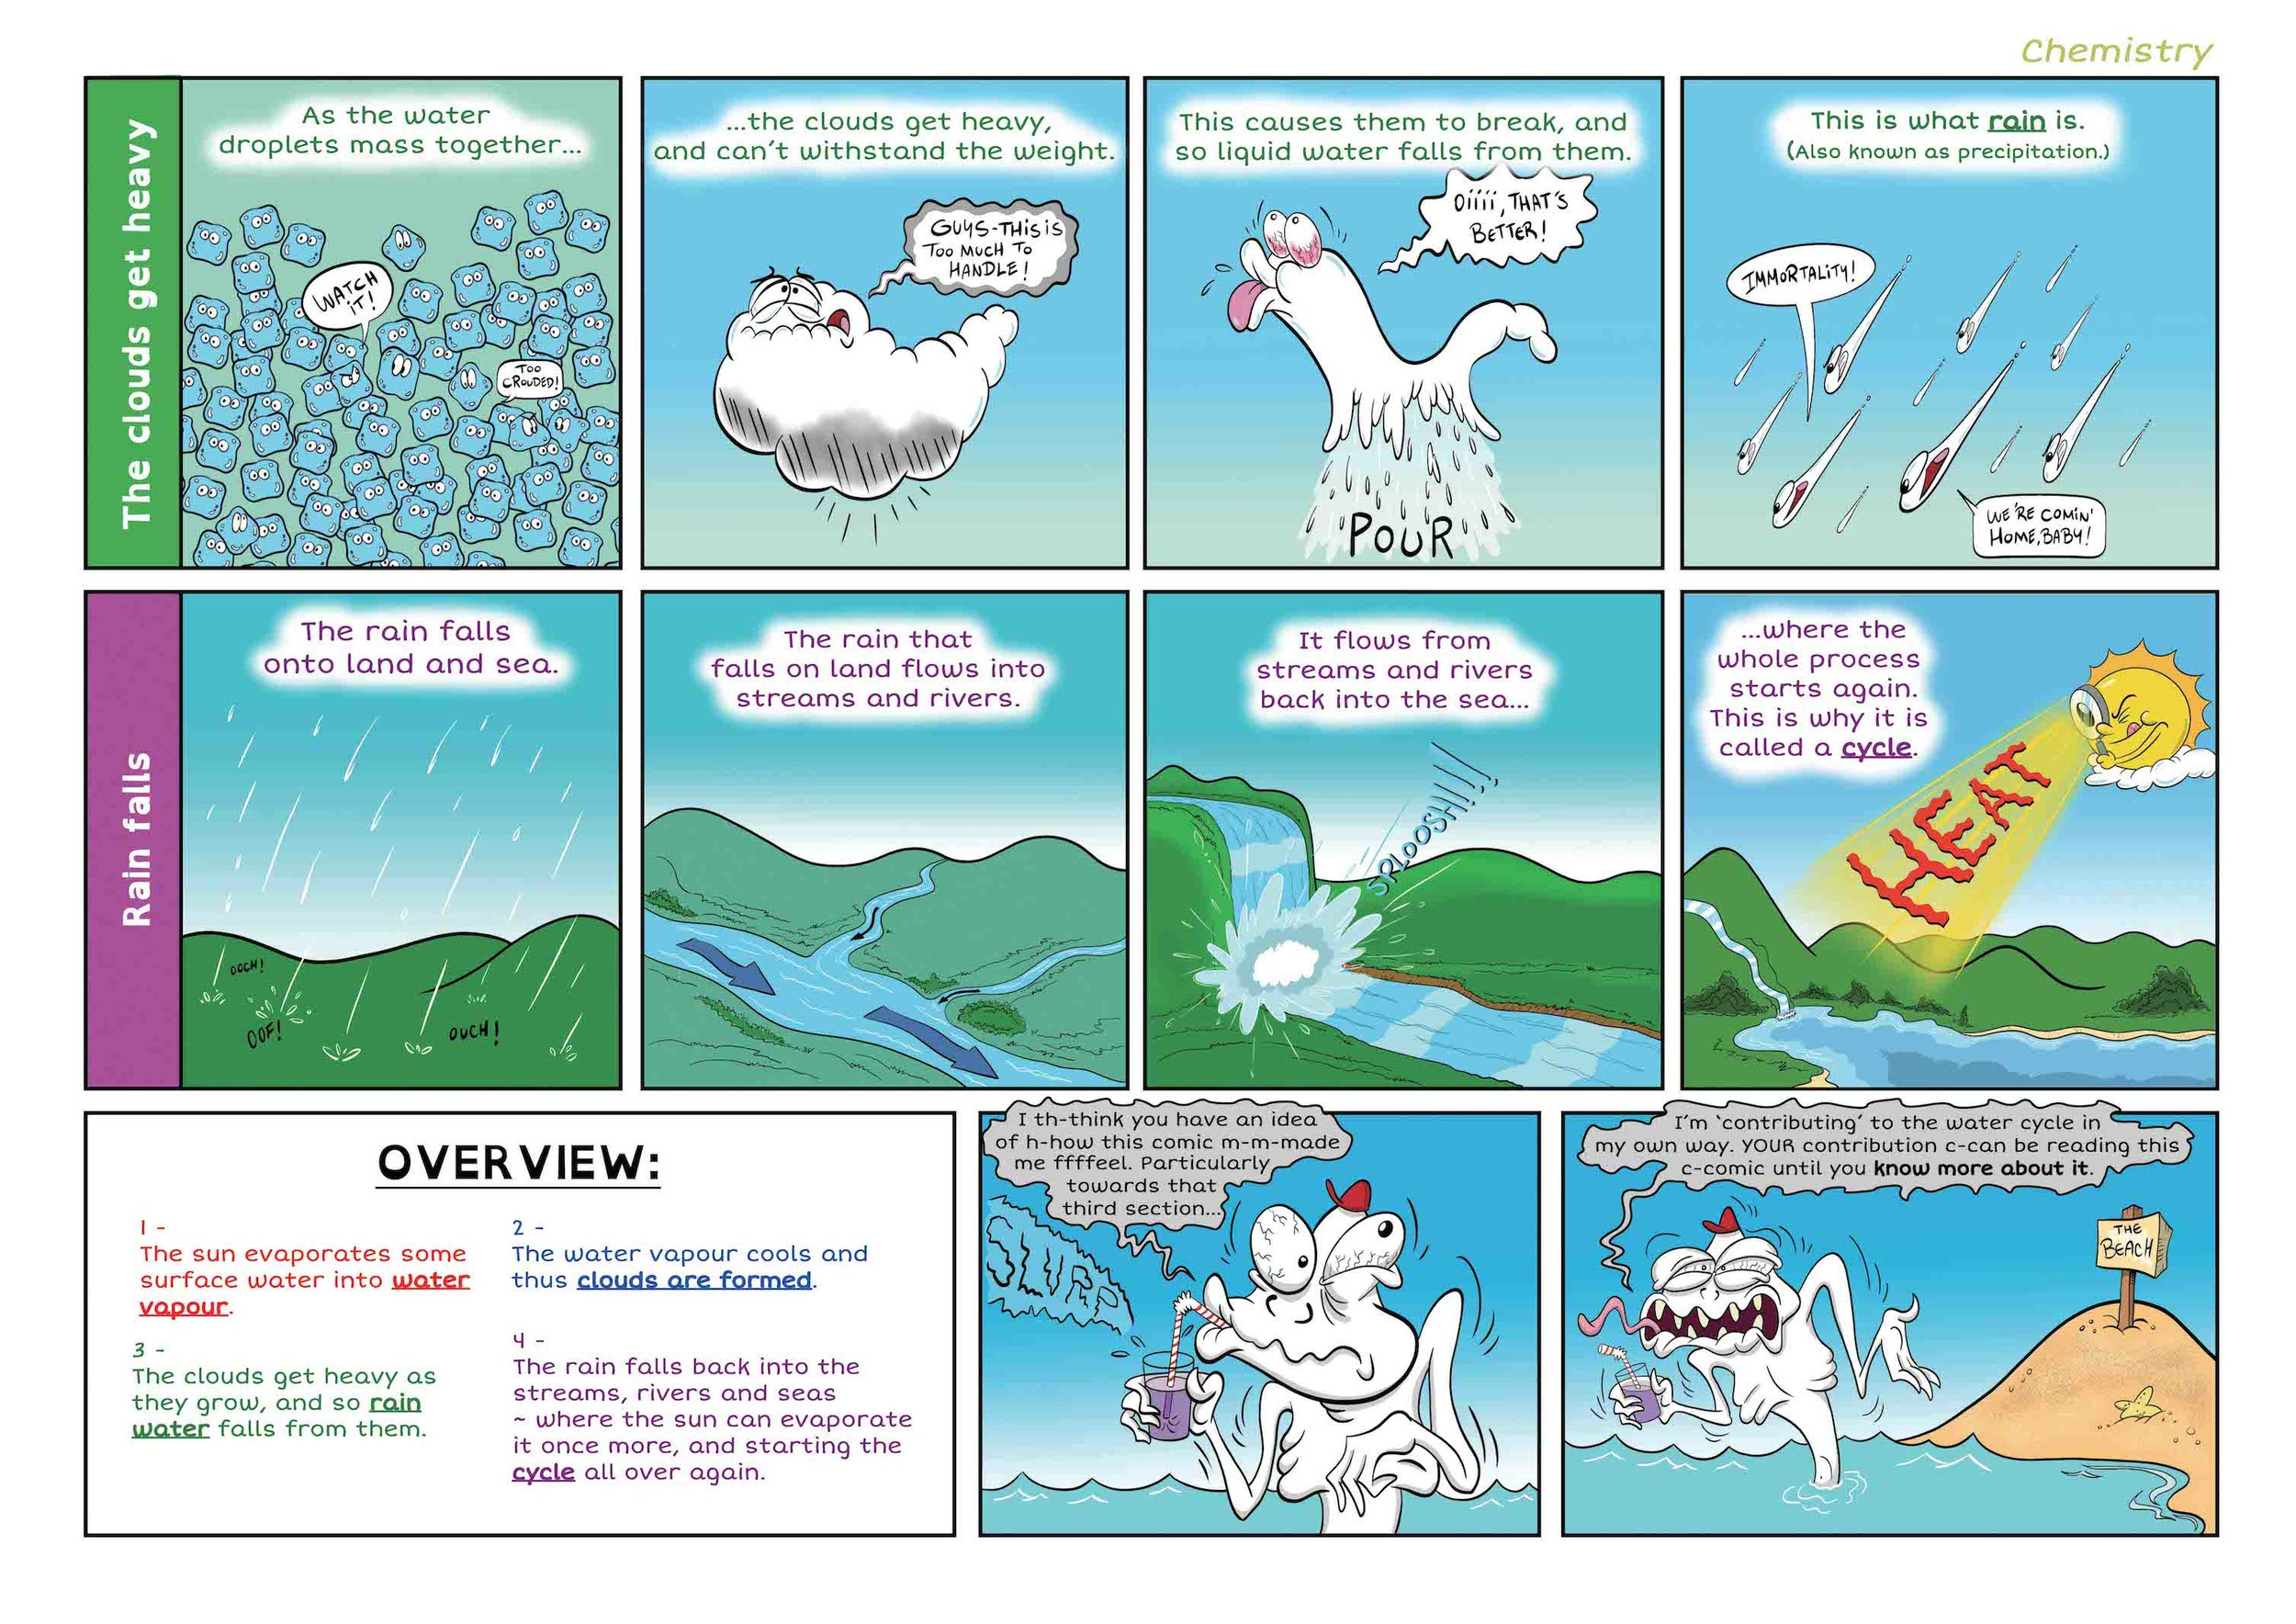 Water Cycle Page 2.jpg